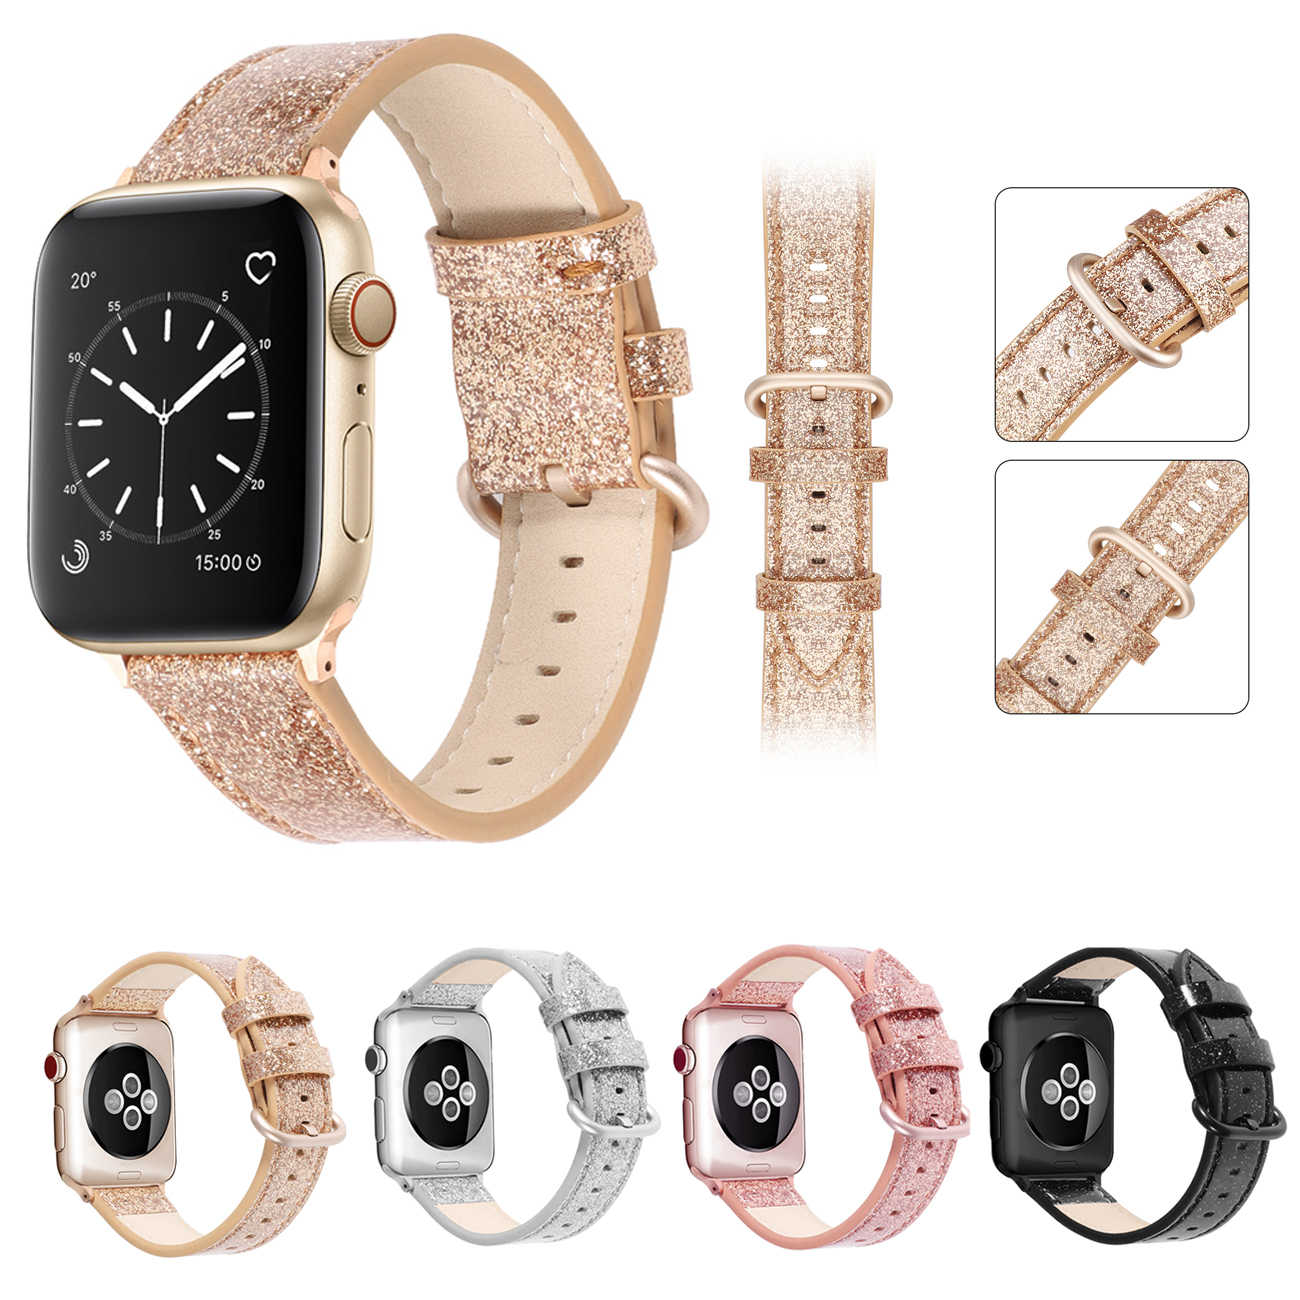 Pętla slim fit do Apple skórzany pasek do zegarka 40mm 44mm do paska iwatch 38mm 42mm seria 5 4 3 2 1